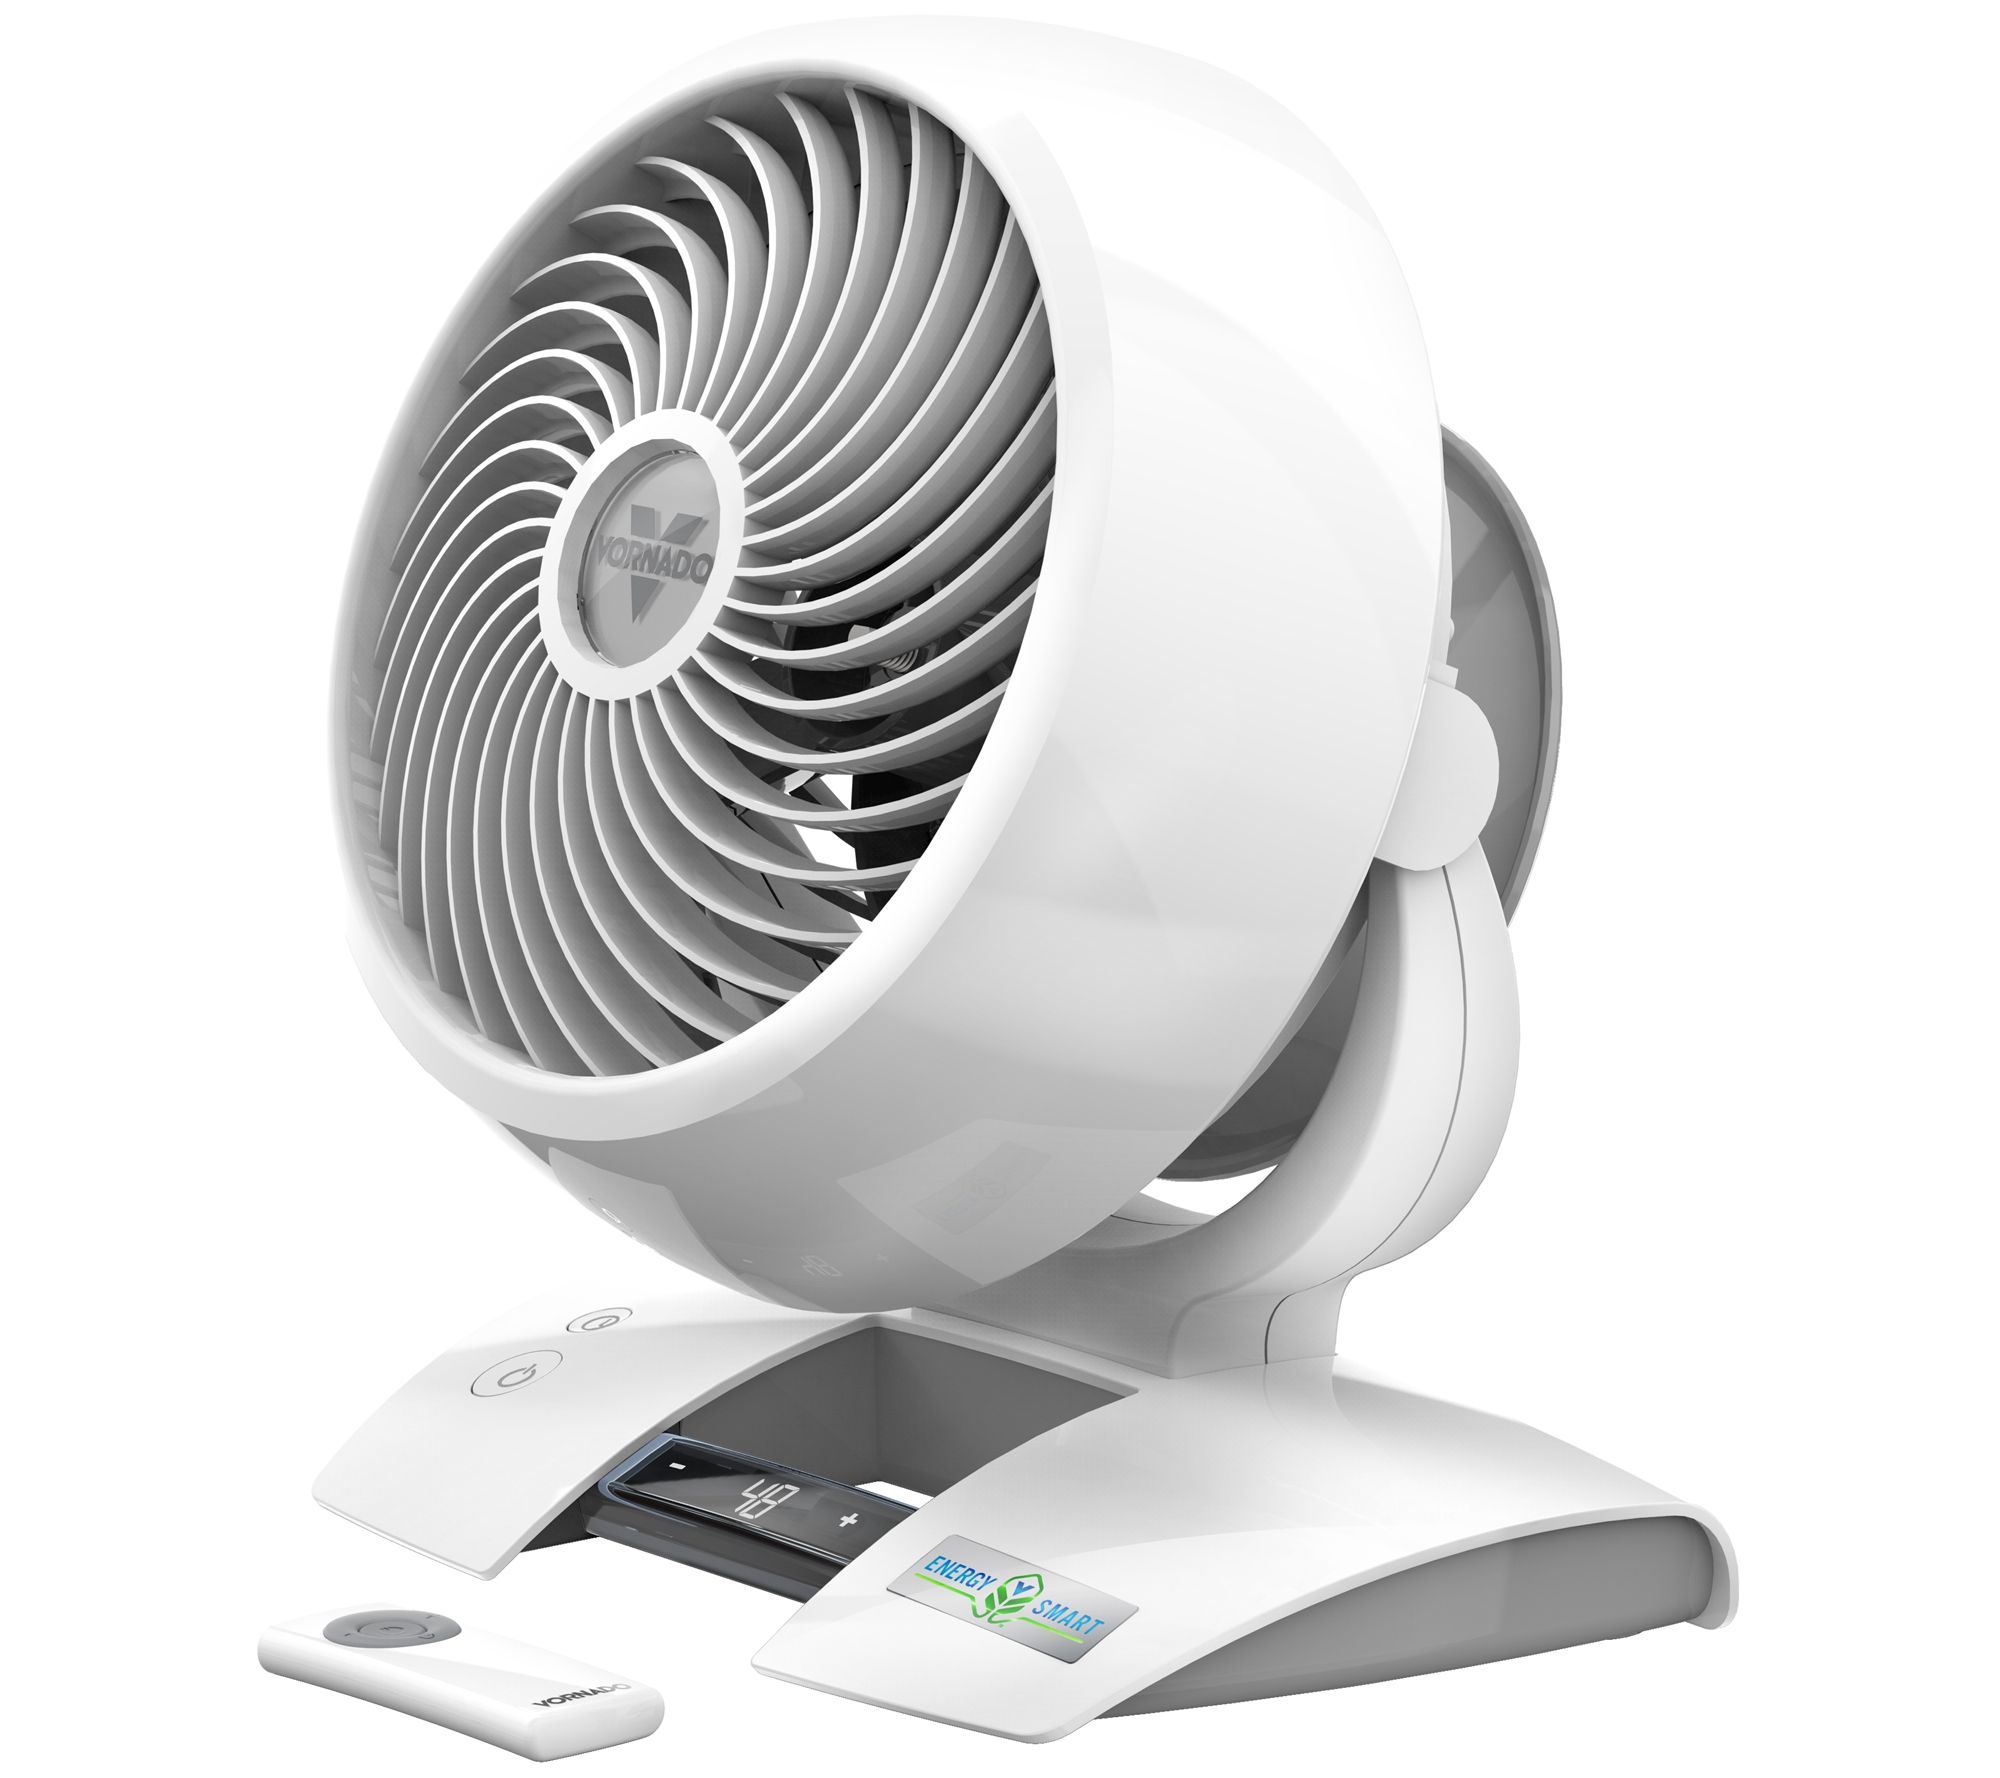 Room To Room Air Circulator : Vornado dc whole room air circulator — qvc